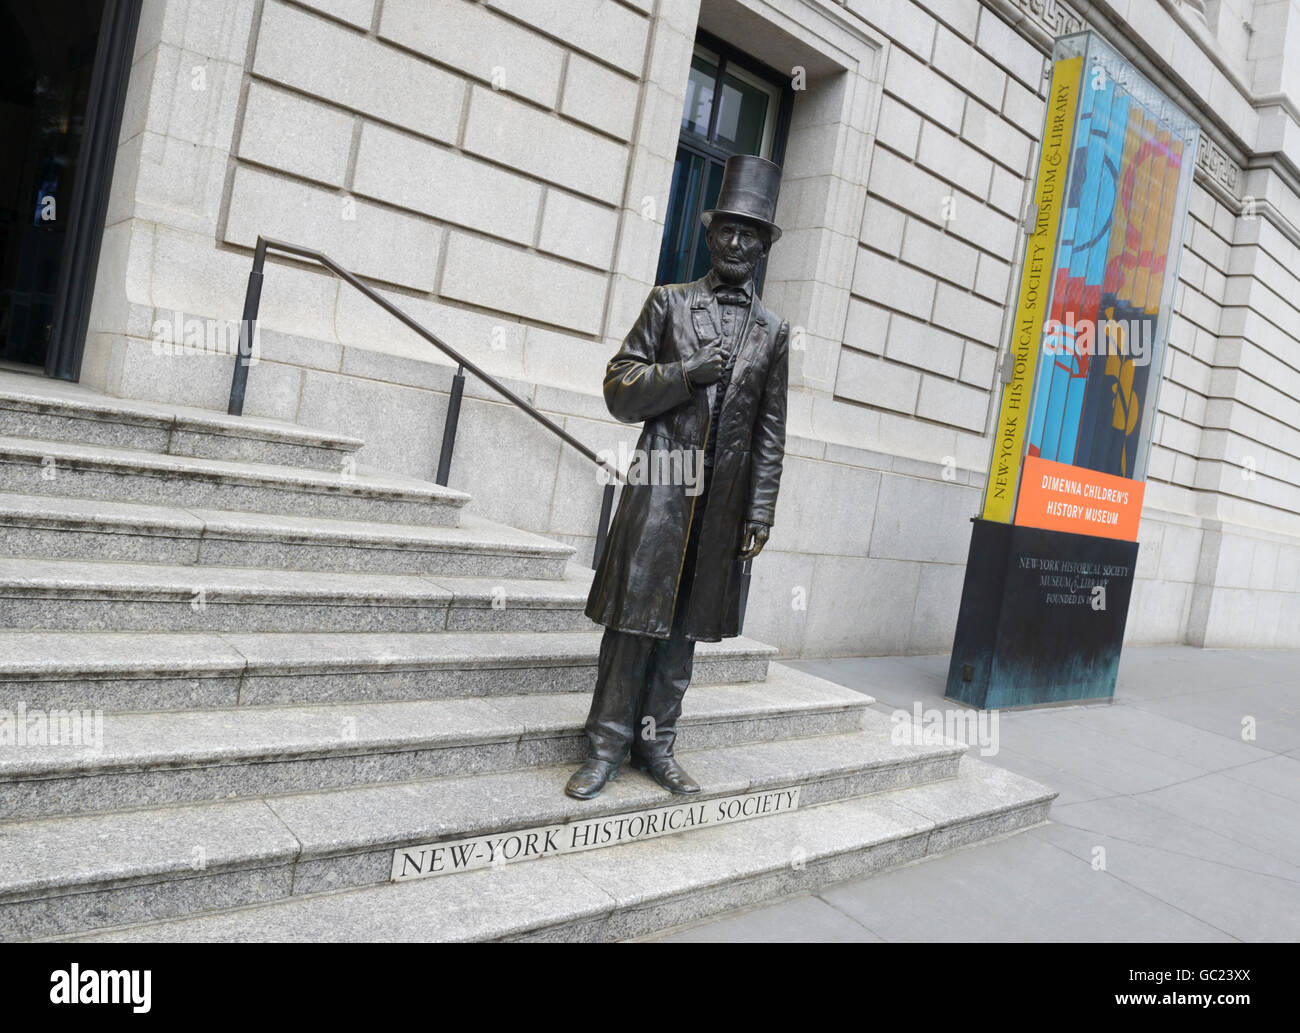 Abraham Lincoln statue in front of NY Historical Society - Stock Image